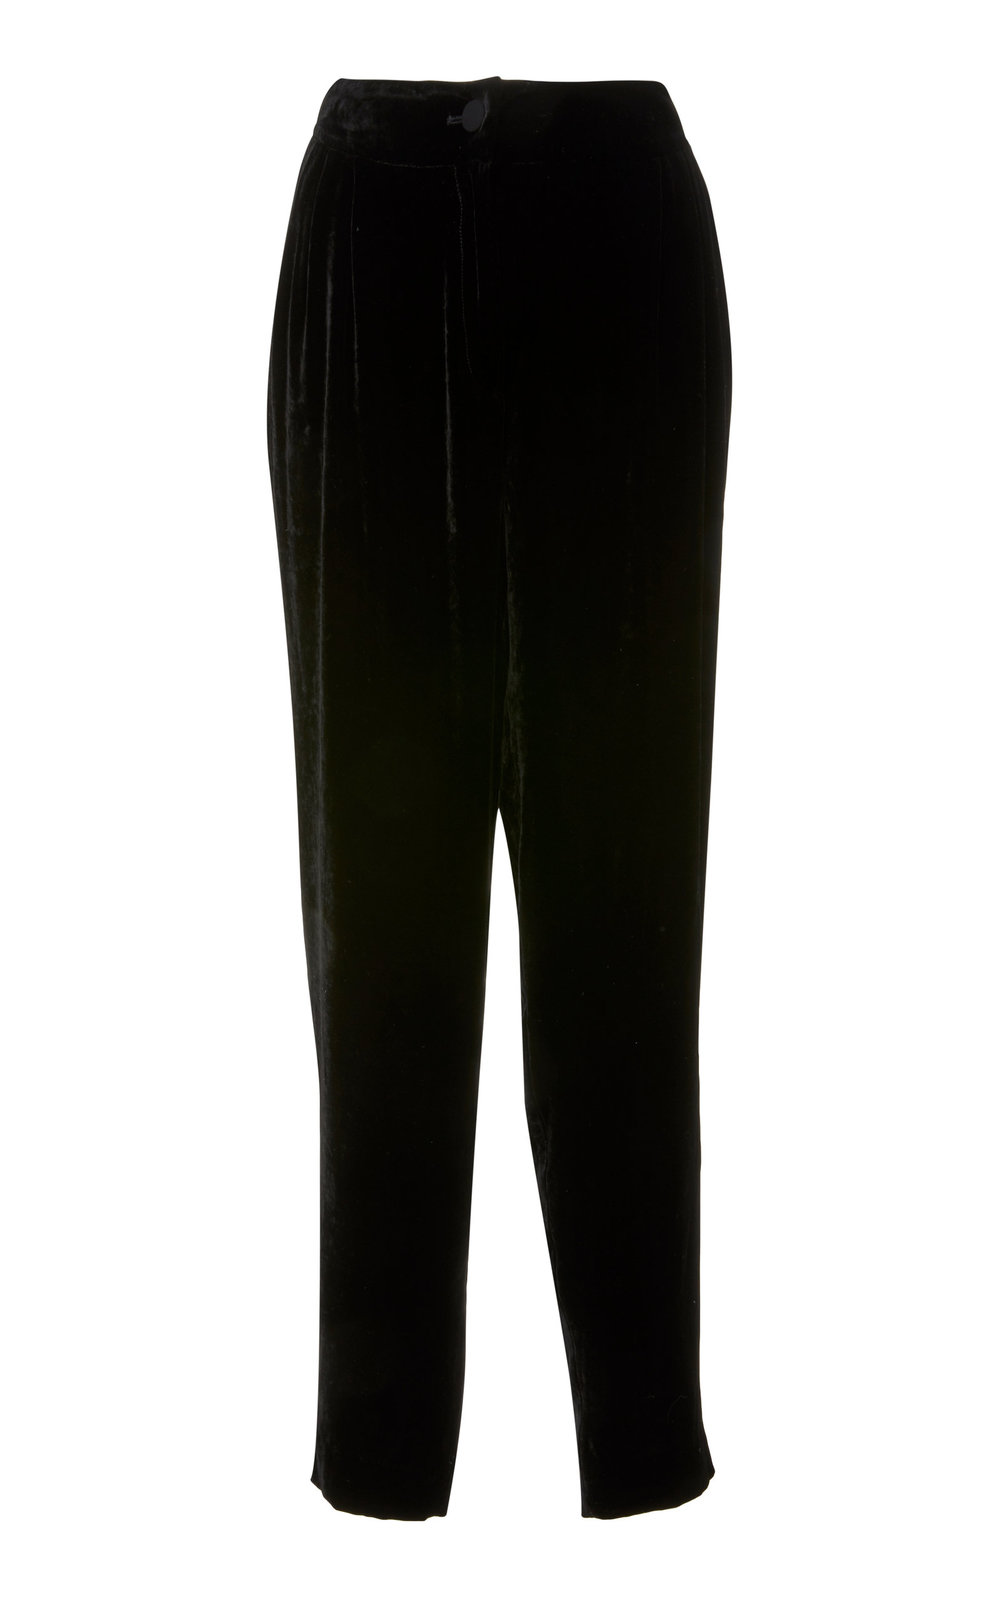 Azalea Velvet Pants - BLACK  These leisure pants are a contemporary classic with their Velvet effect and easy fit. A modern balance between sporty and dressed, these pants are a wardrobe staple.